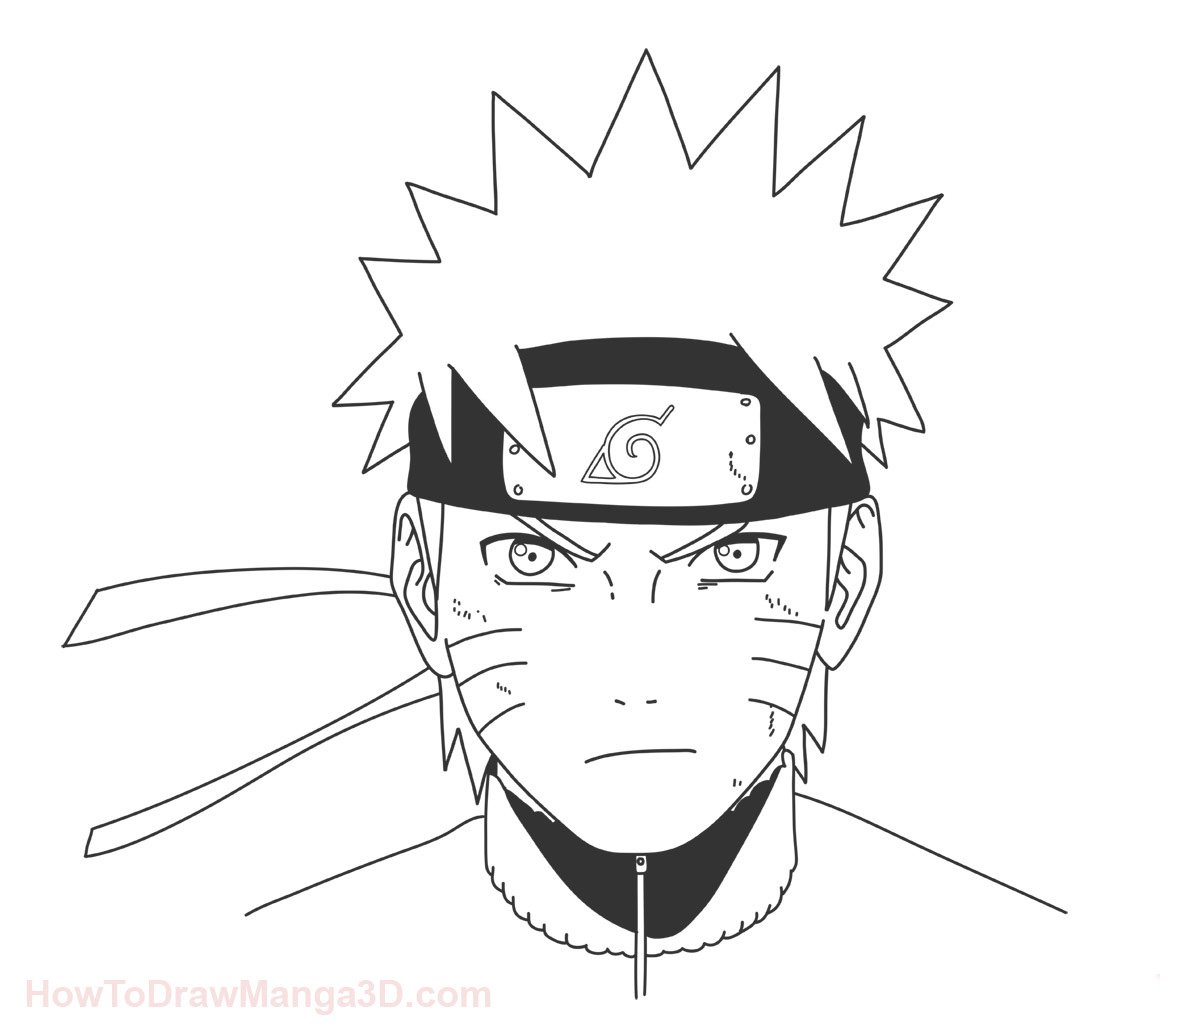 1194x1024 Let#39s learn how to draw Naruto Step by Step from Naruto today